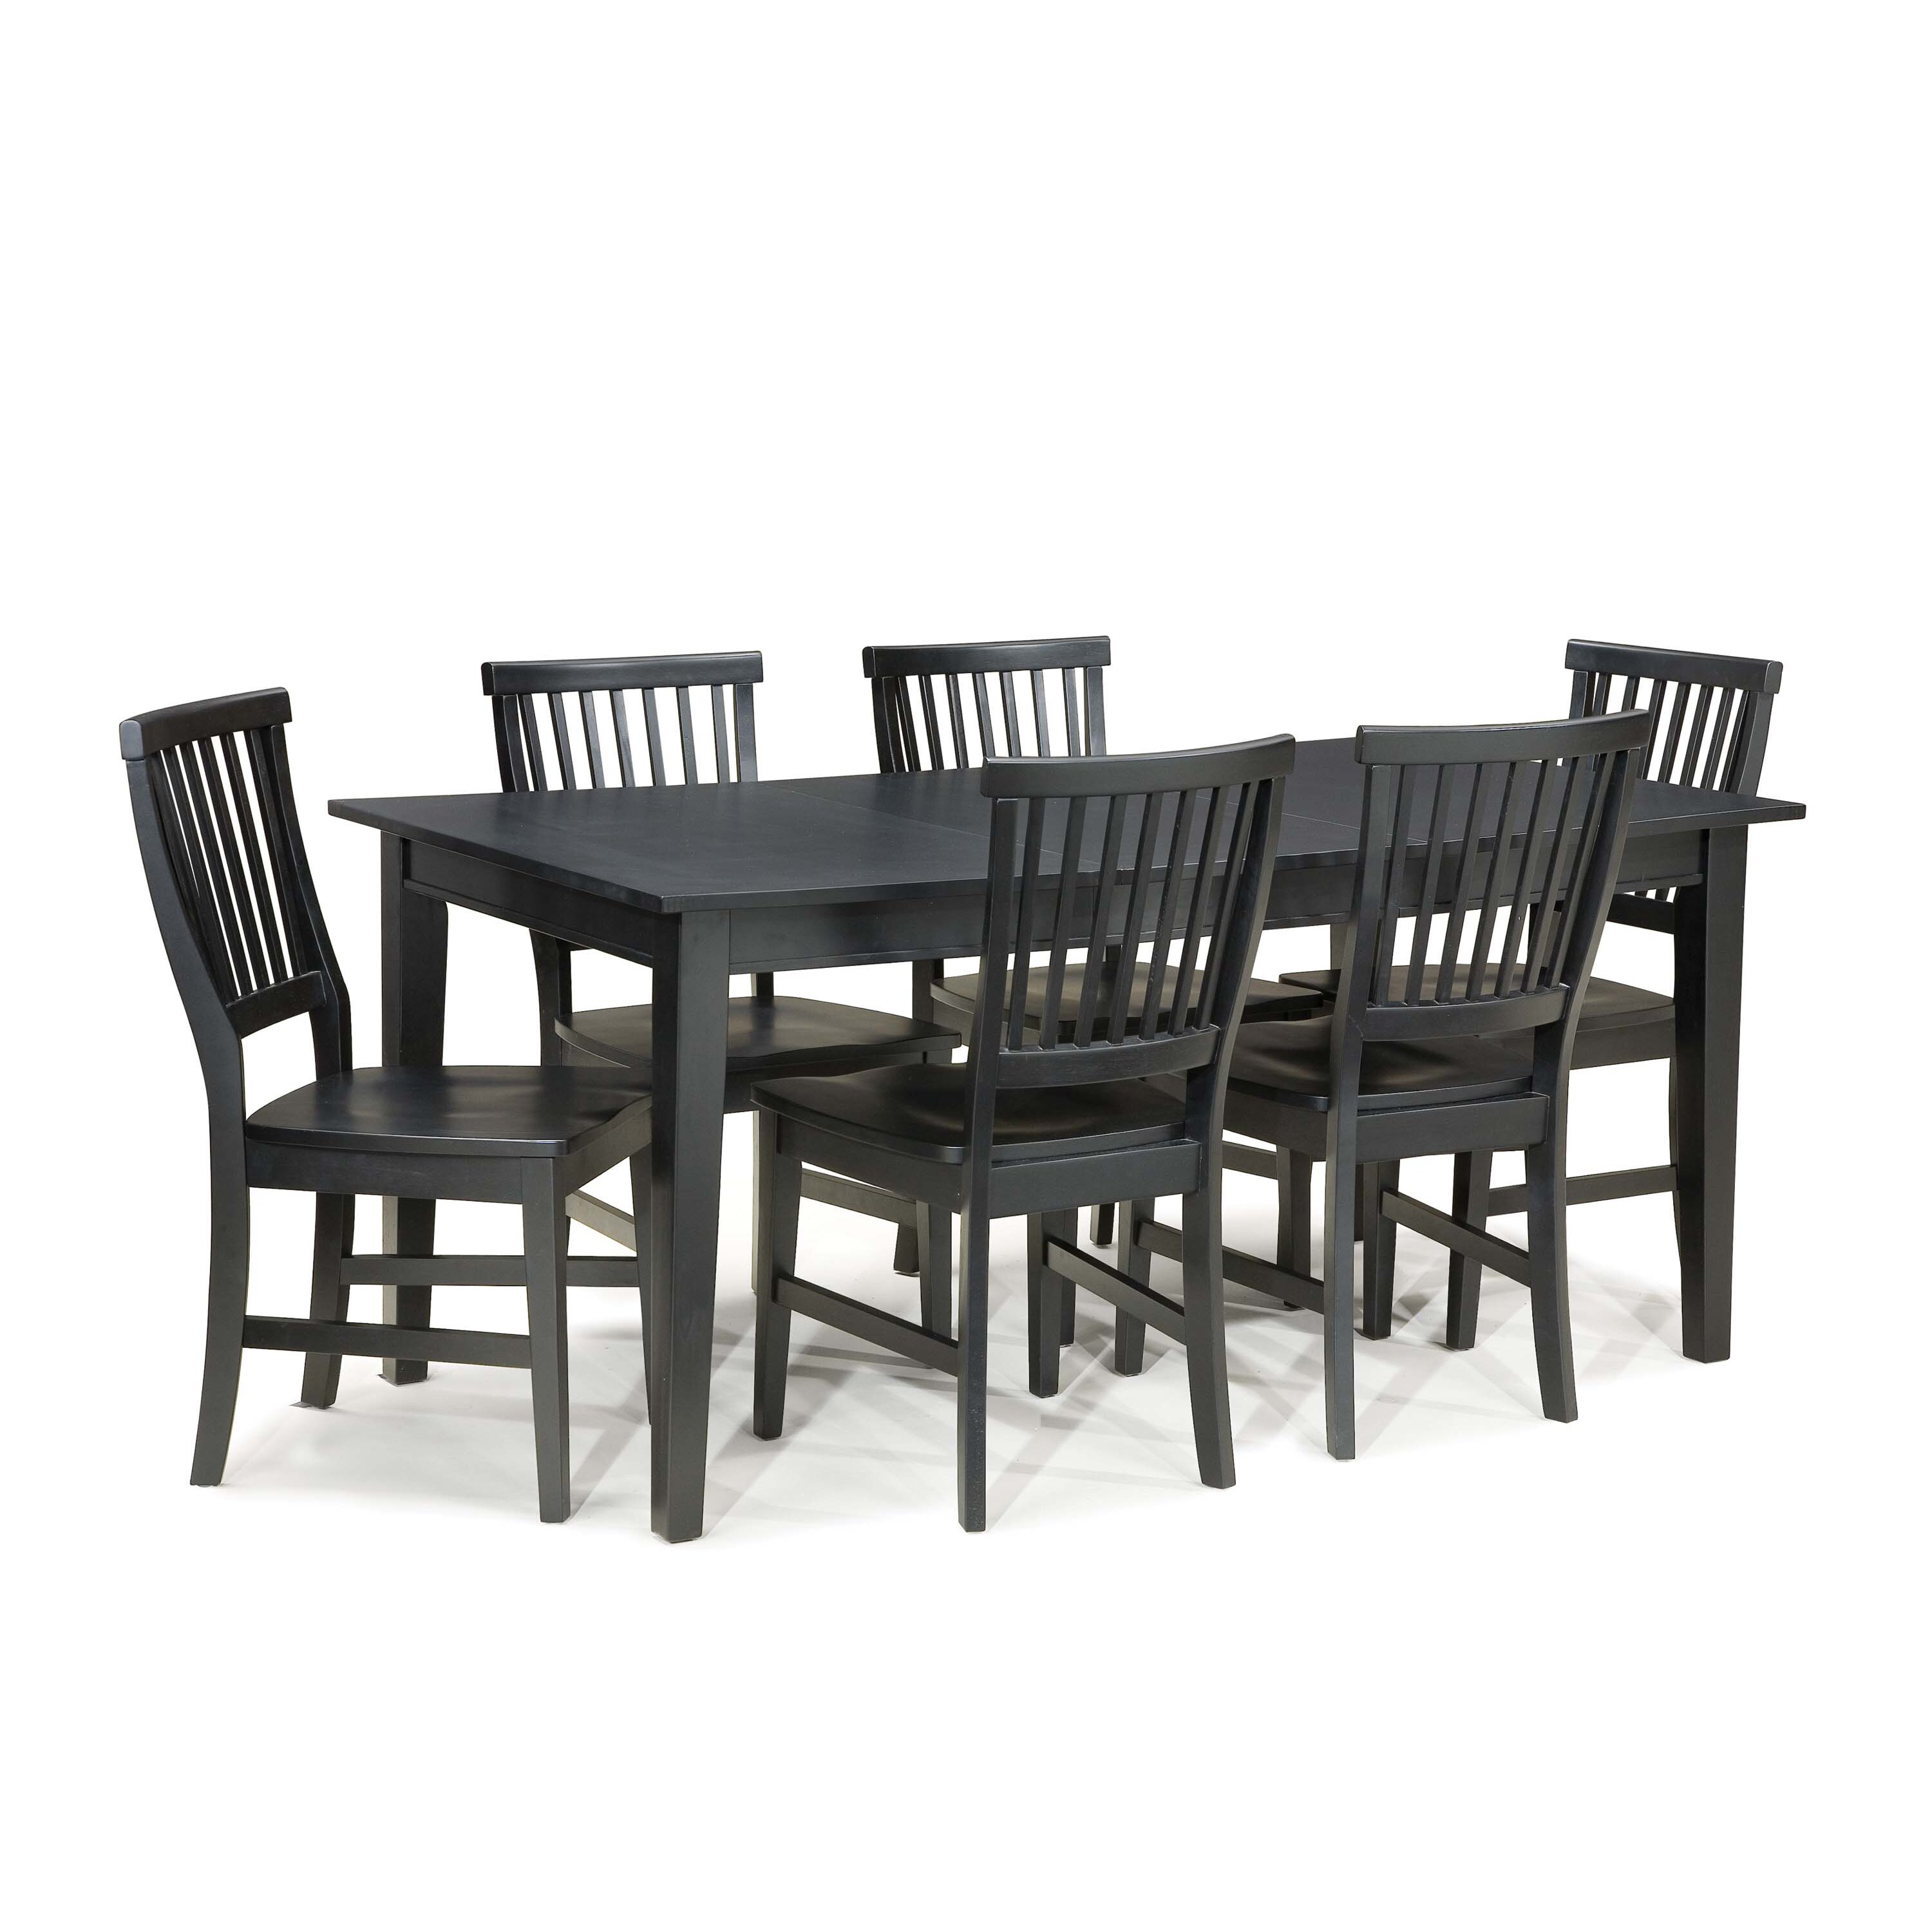 Alcott hill lakeview 7 piece dining set reviews wayfair for 7 piece dining set